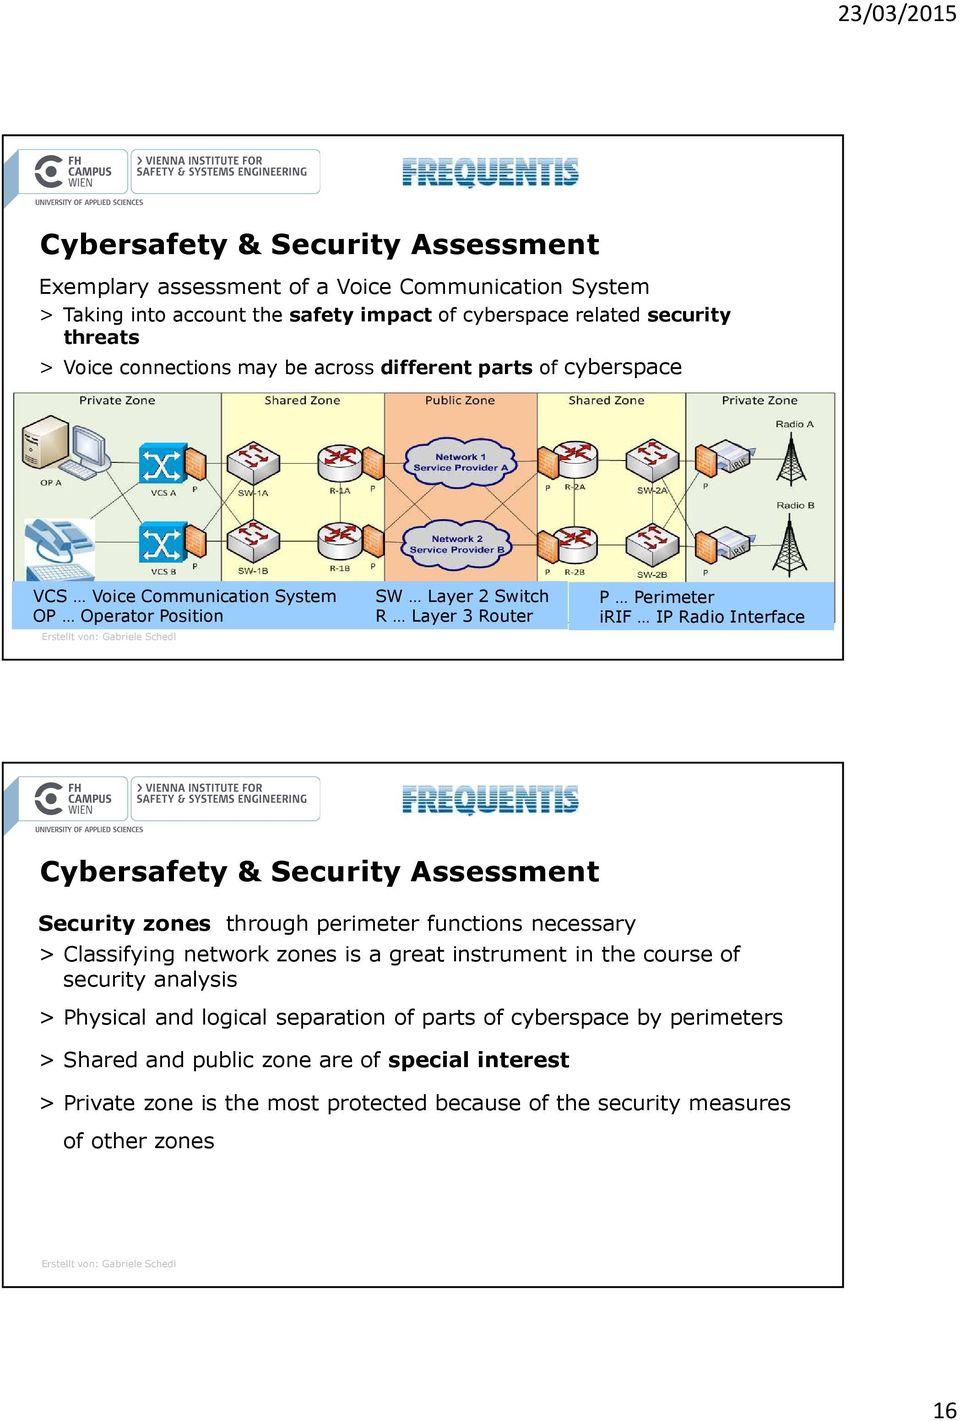 Cybersafety & Security Assessment Security zones through perimeter functions necessary > Classifying network zones is a great instrument in the course of security analysis > Physical